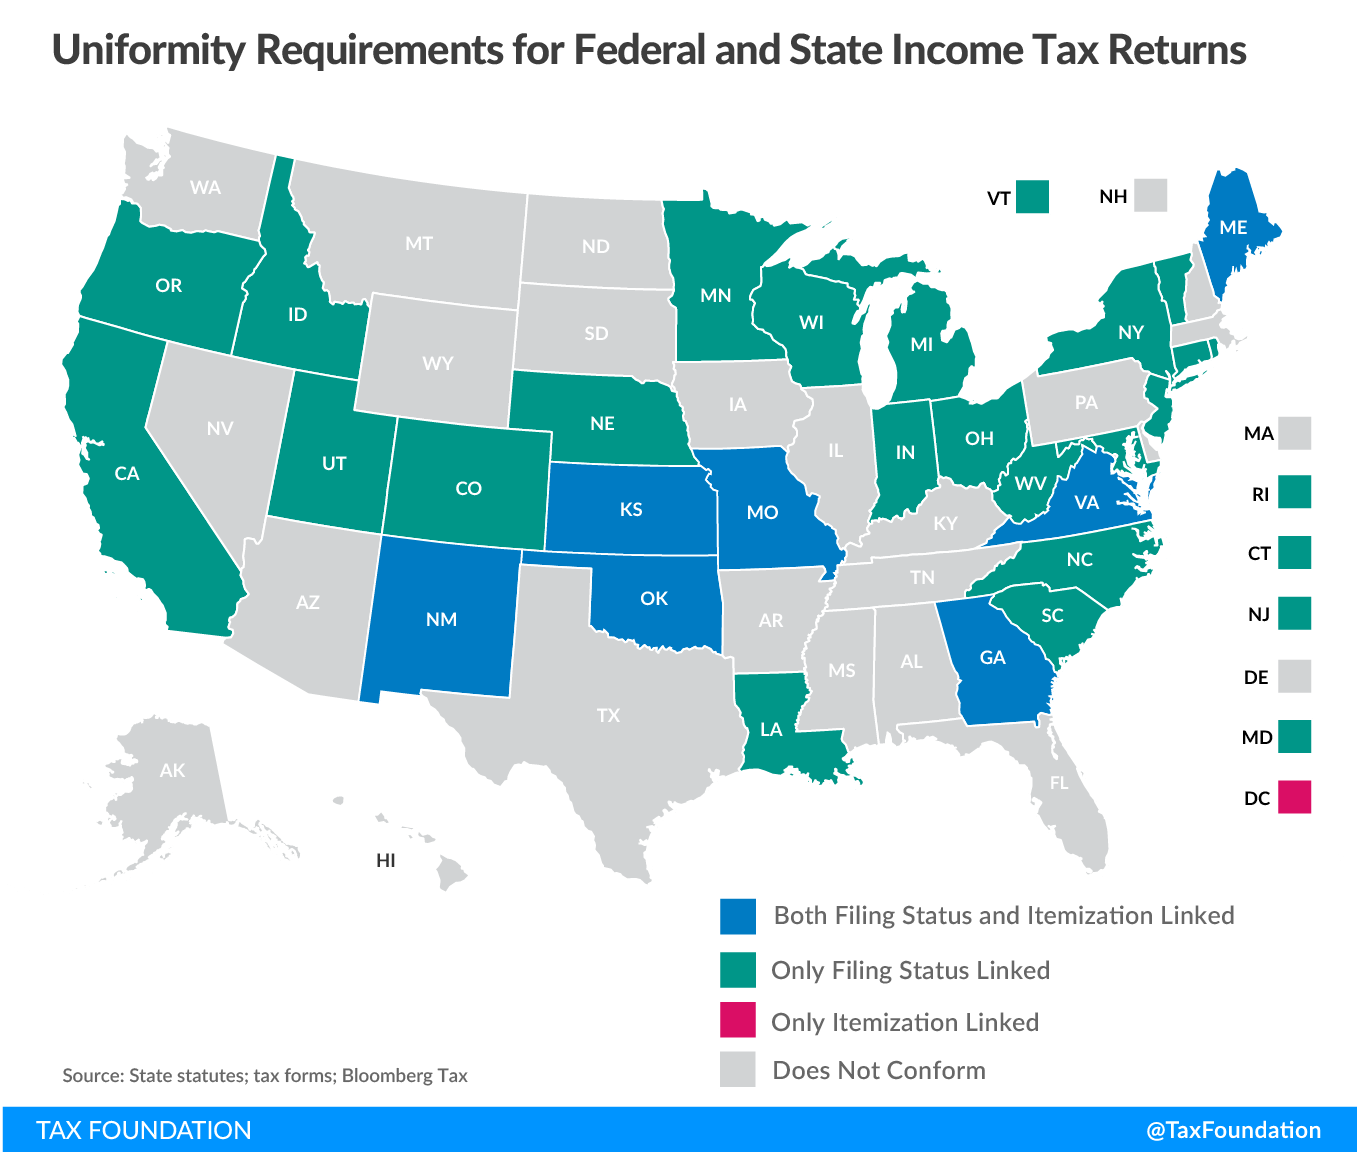 Uniformity Requirements for Federal and State Income Tax Returns, state tax conformity post-TCJA